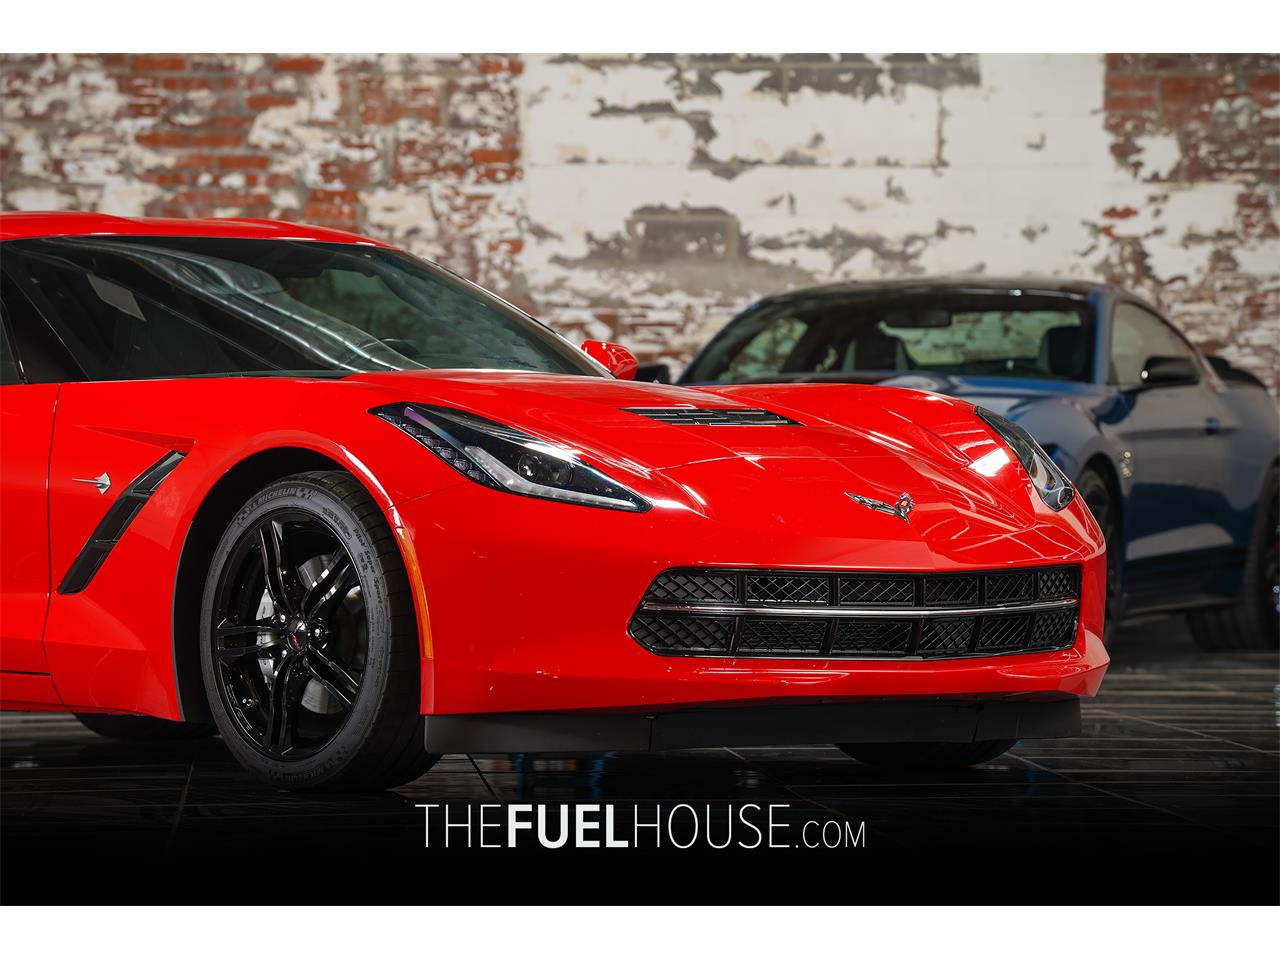 2017 Chevrolet Corvette Stingray (CC-1321826) for sale in Bonner Springs, Kansas